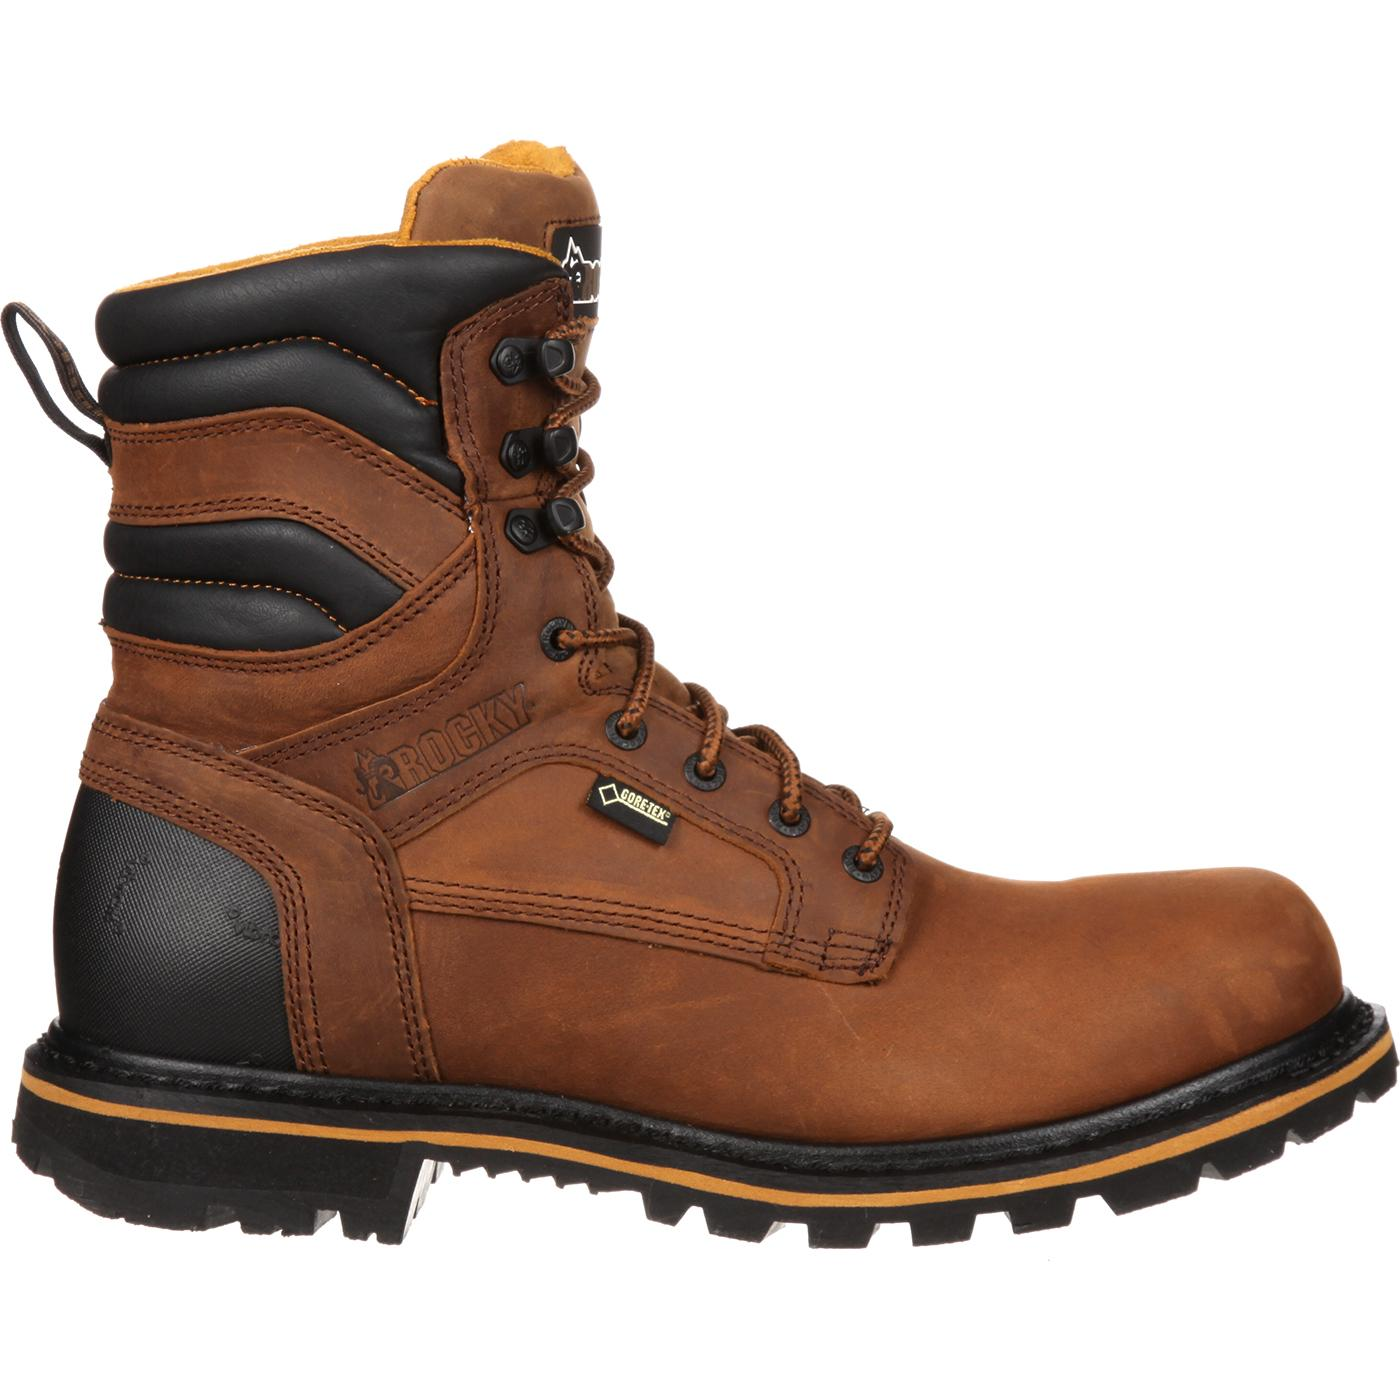 Gore Tex Waterproof Work Boots Rocky Governor Rkyk003